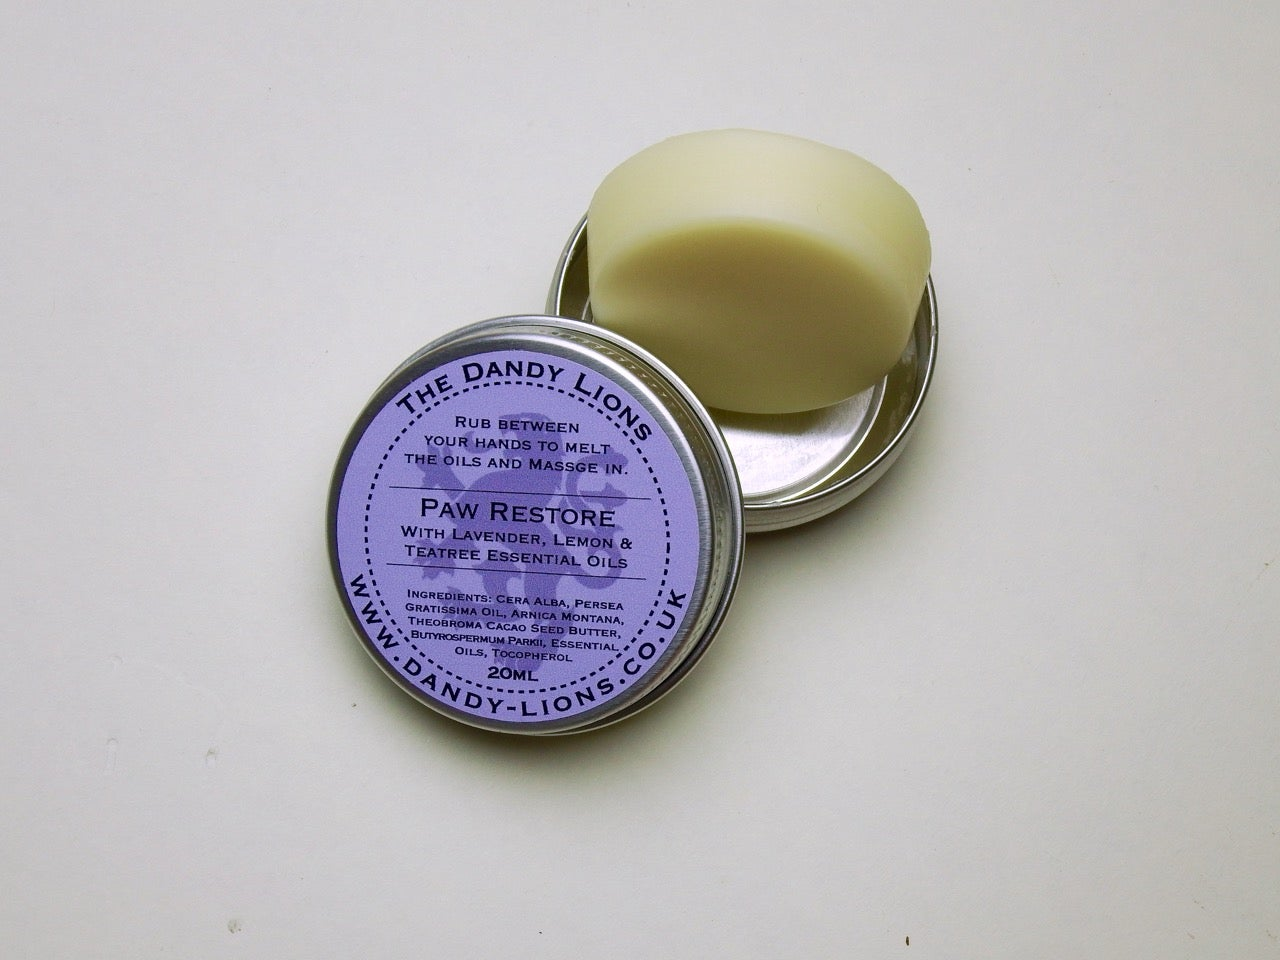 Image of Paw Restore solid hand balms